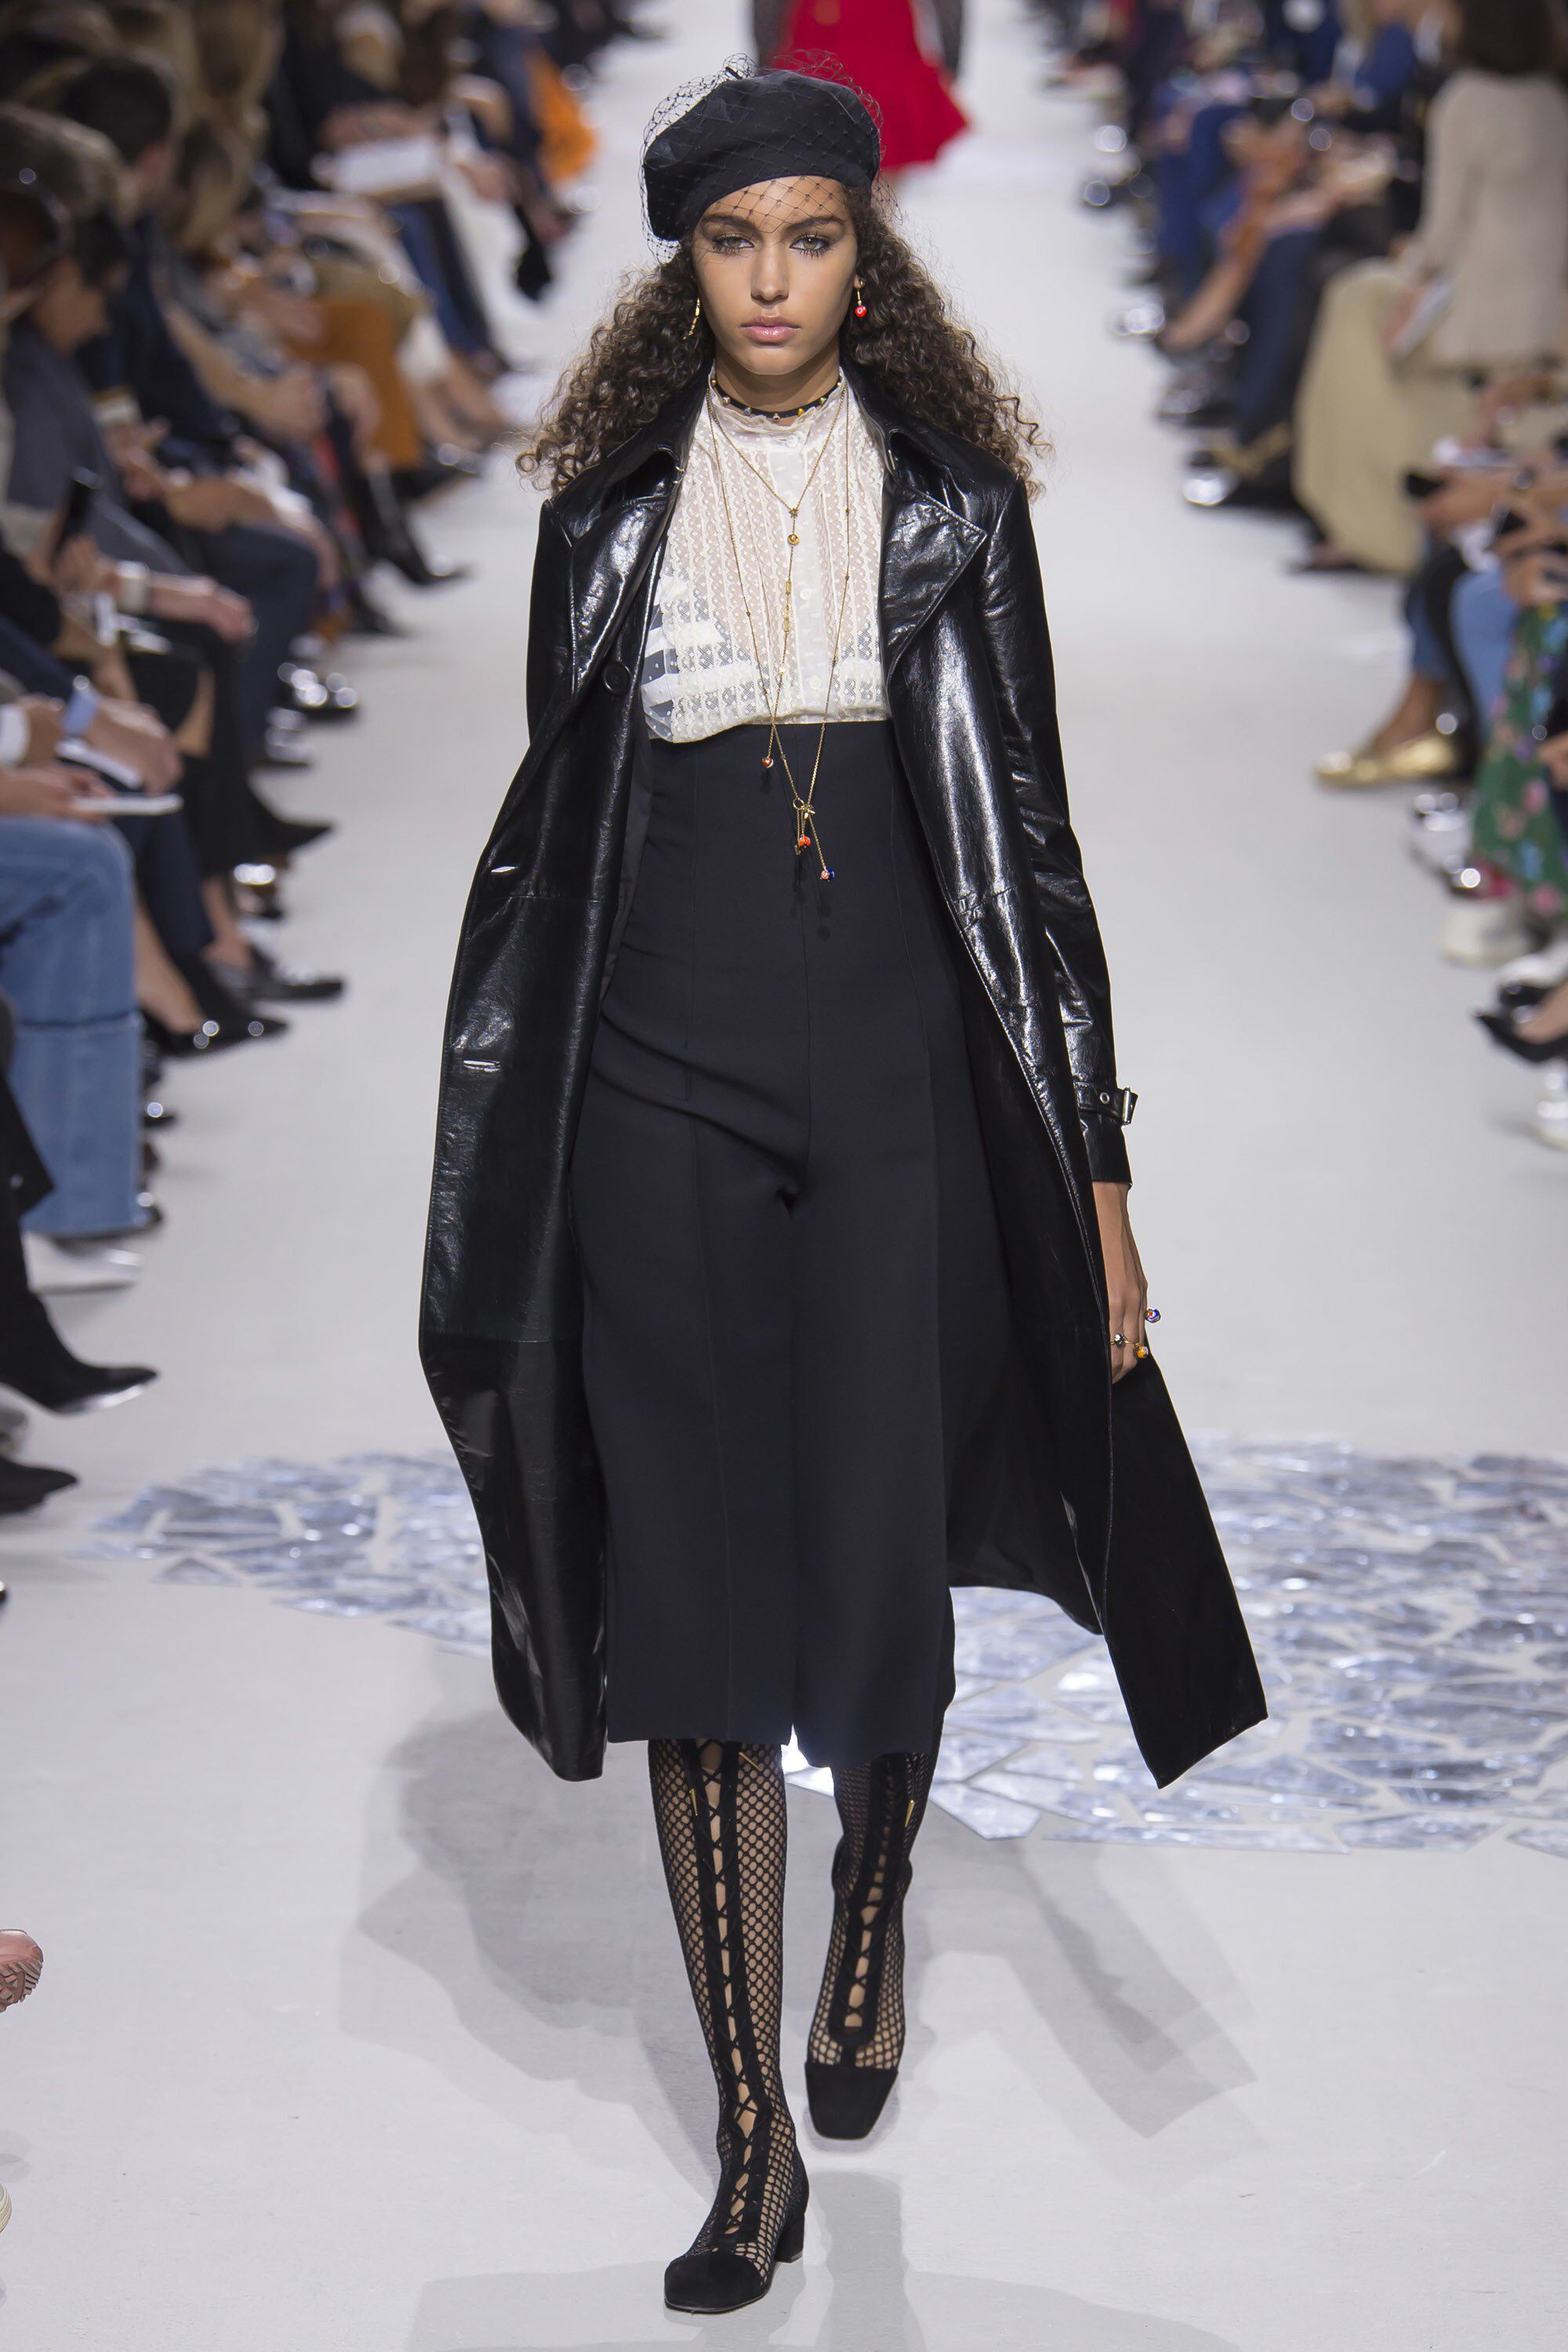 b9e491c17f916 Christian Dior Spring 2018 Ready-to-Wear Fashion Show Collection ...